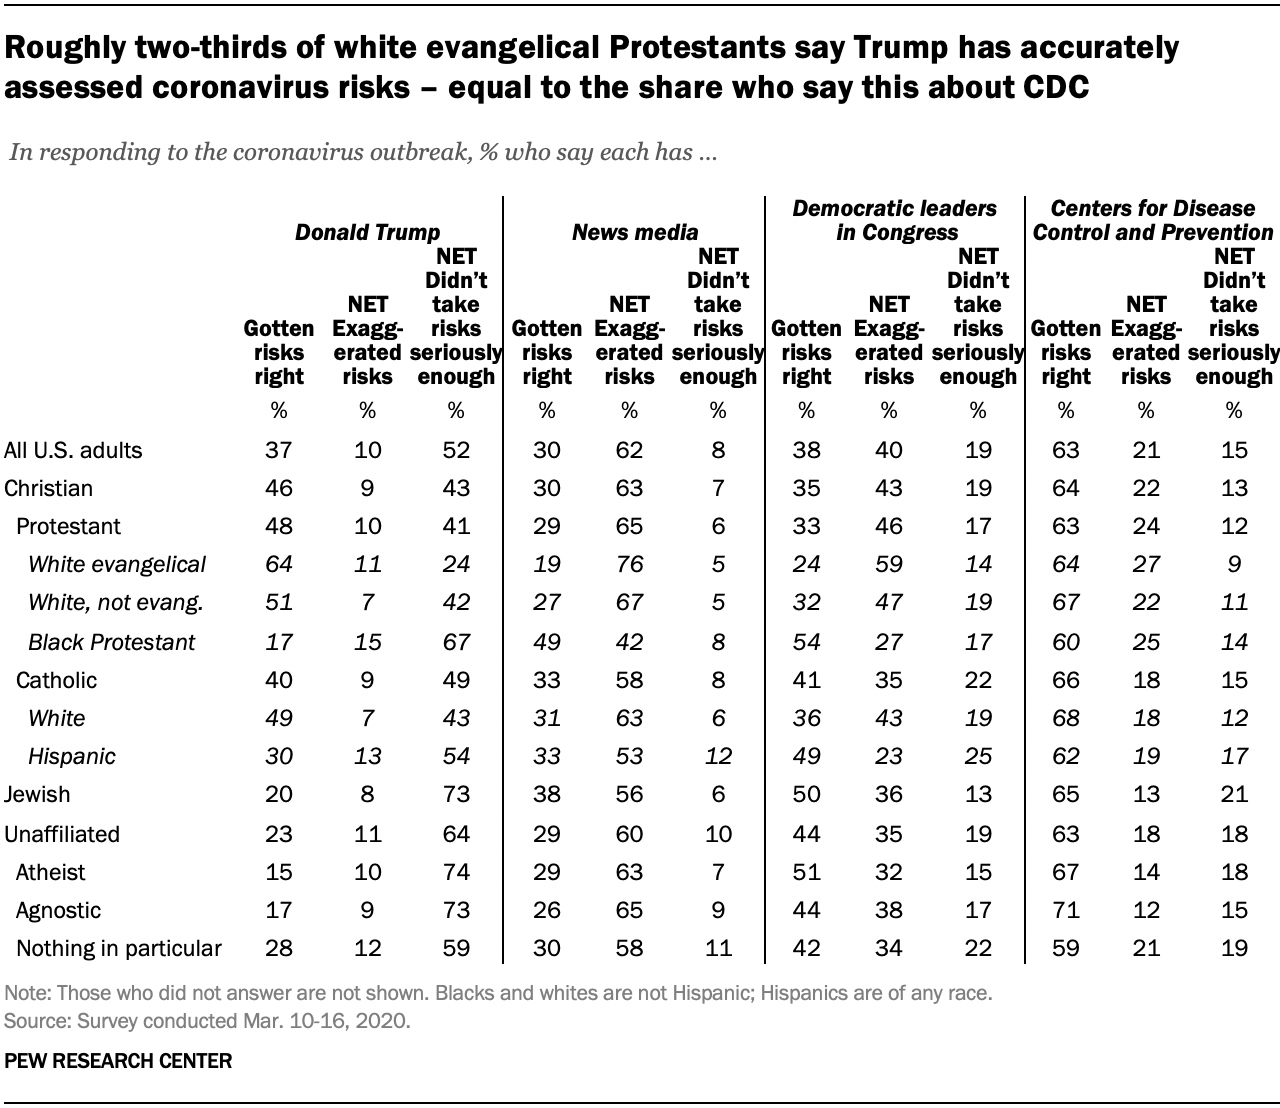 Roughly two-thirds of white evangelical Protestants say Trump has accurately assessed coronavirus risks – equal to the share who say this about CDC